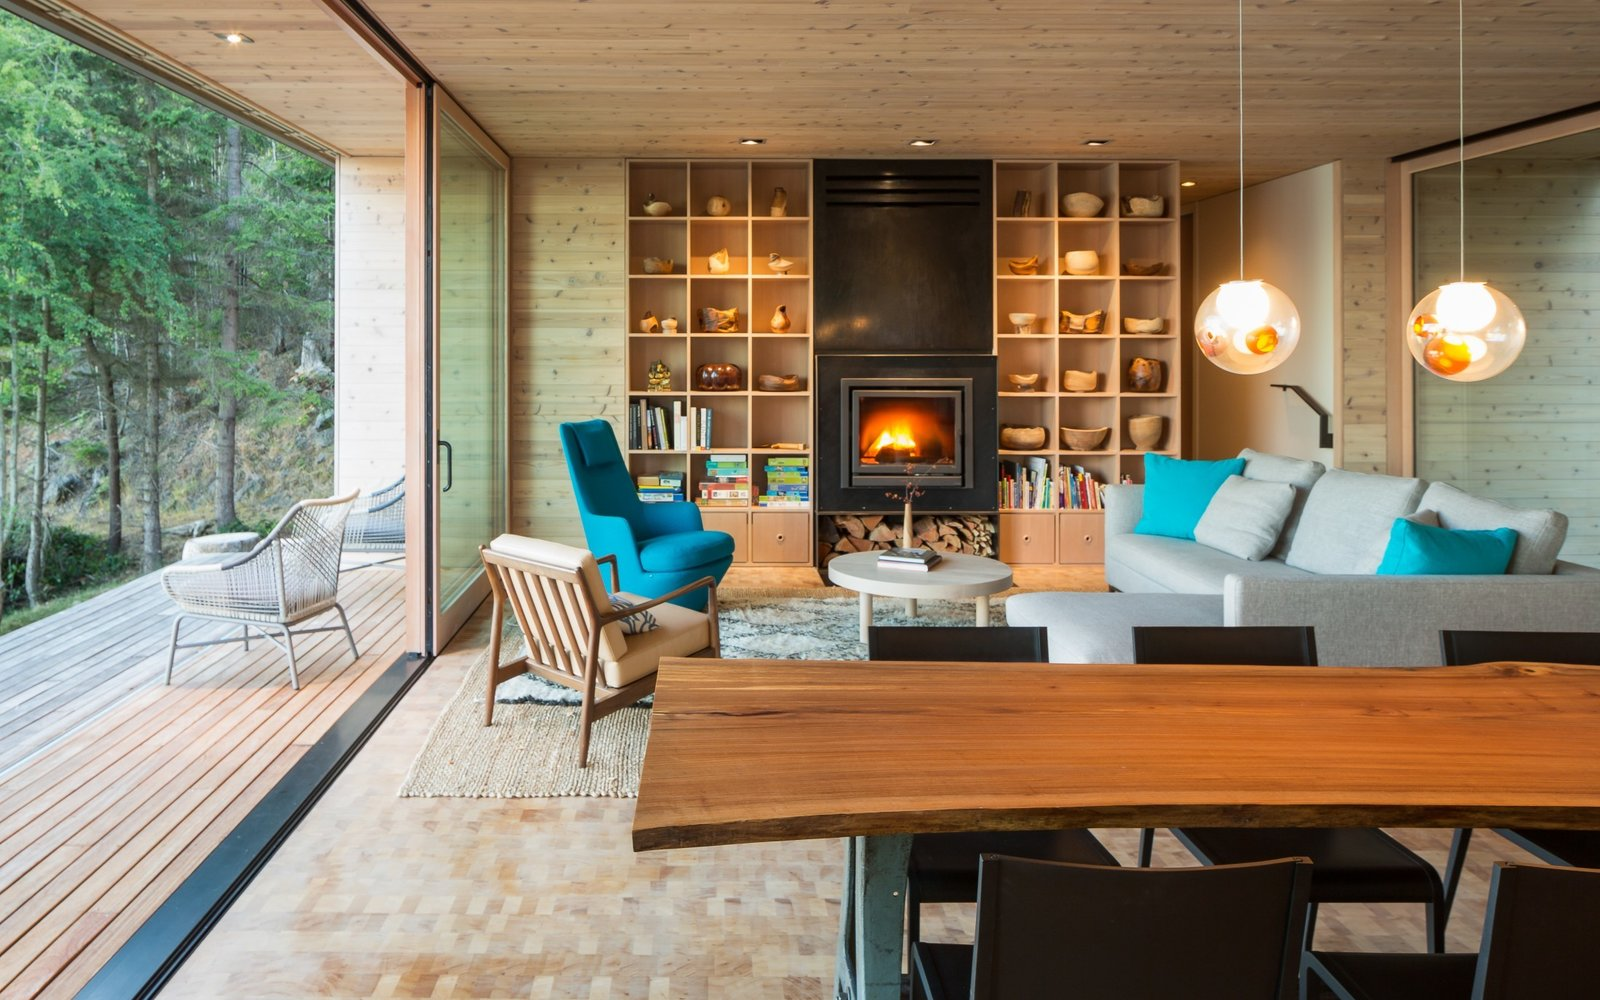 Living Room, Bookcase, Sofa, End Tables, Standard Layout Fireplace, Ceiling Lighting, Sectional, Medium Hardwood Floor, Gas Burning Fireplace, Chair, Coffee Tables, and Bench  Lone Madrone Cabin by Heliotrope Architects